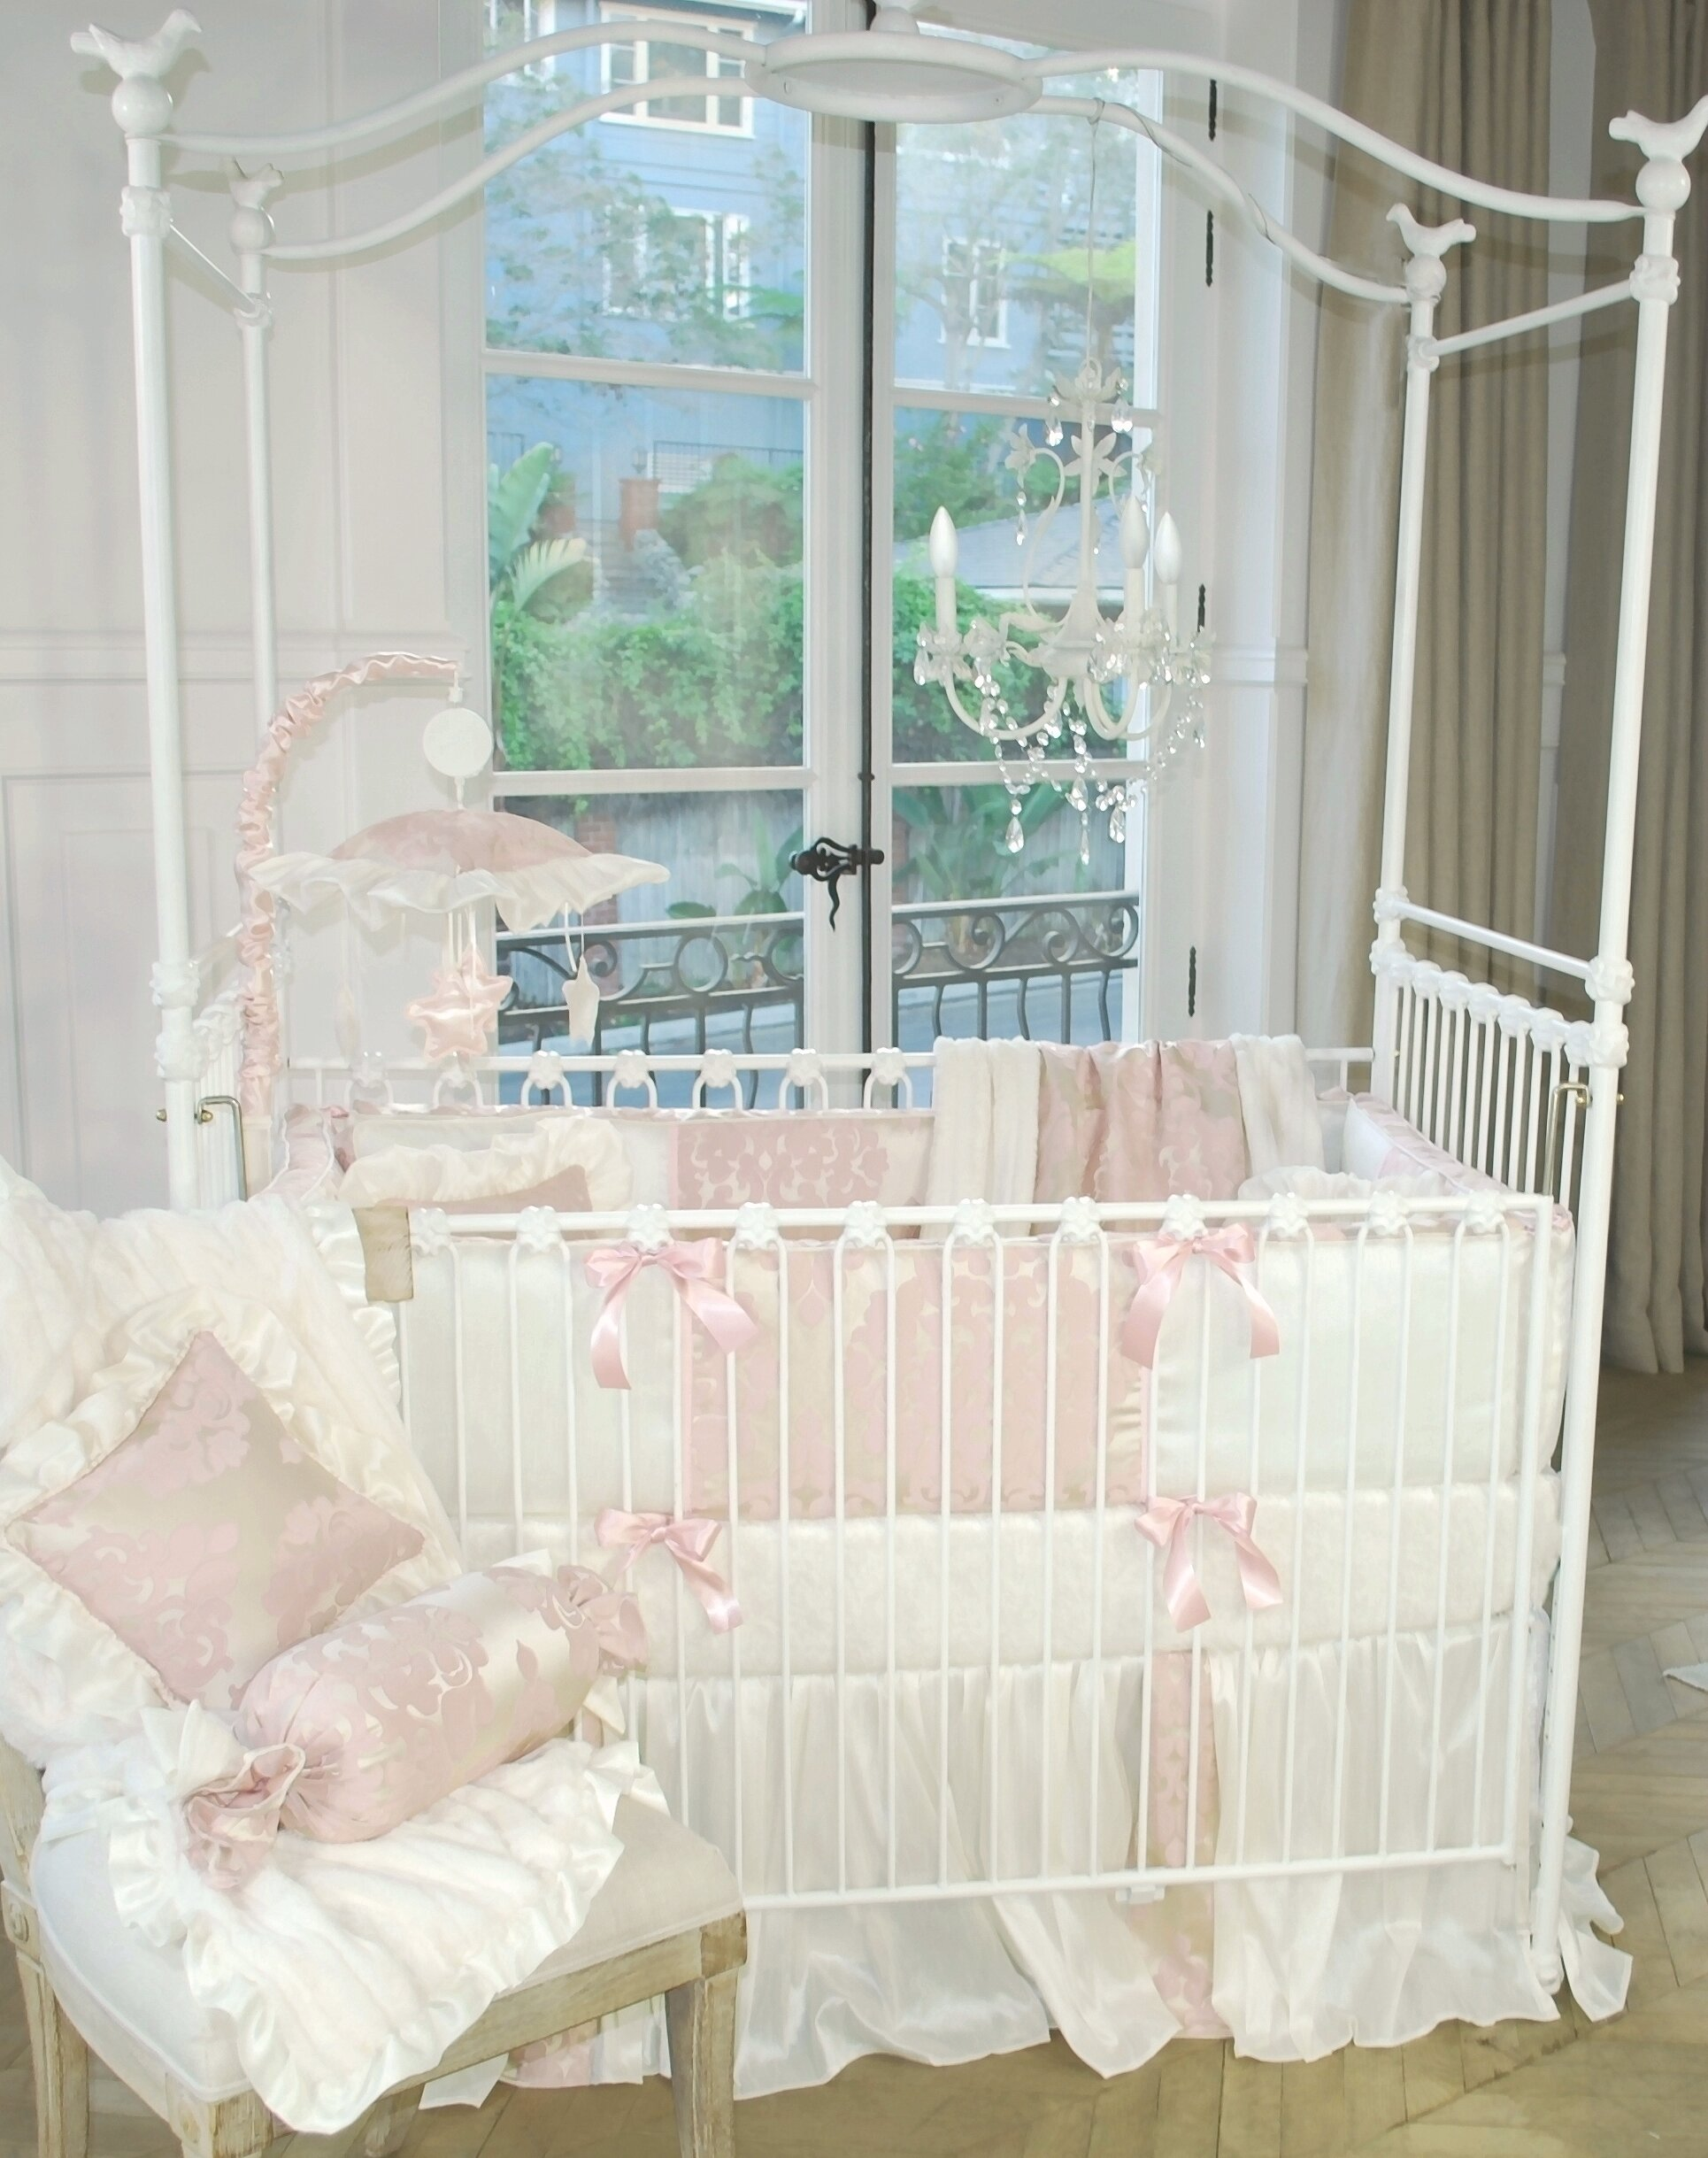 pink airplane quilt boy the next blue peanut bumper girl set cot out size neutral cus shell of sheets infant ters full baby ter and sets arianna grey quilts piece crib white take monkey nursery accessories stress bedding